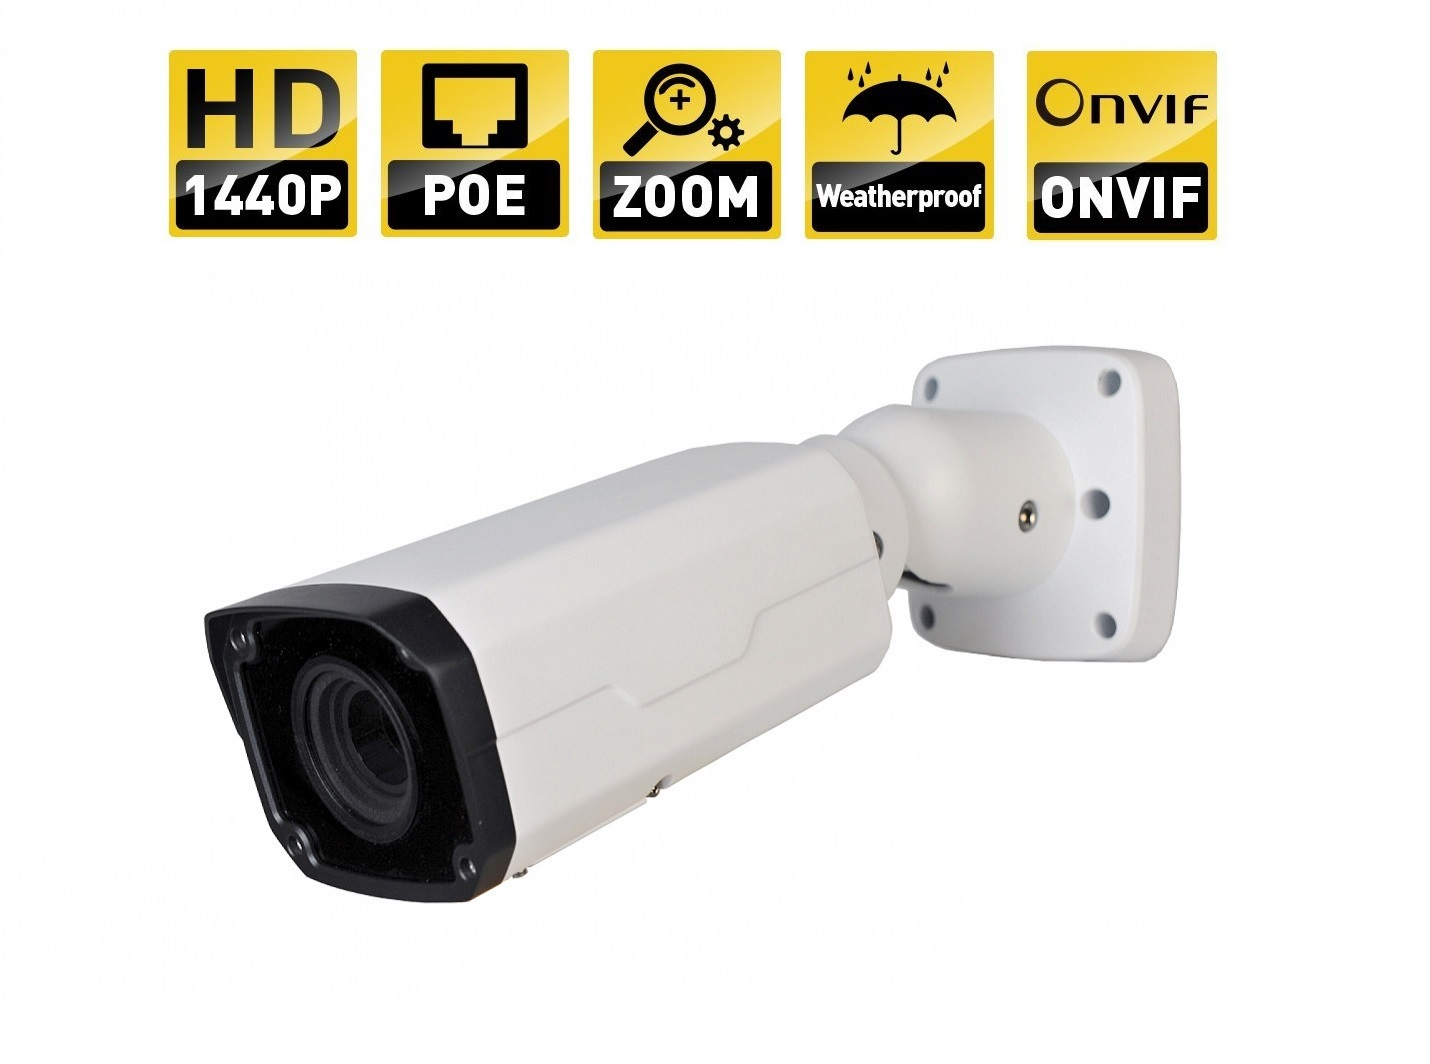 IPC2324EBR-DPZ28 4MP Motorized VF Network IR Bullet Camera - Click Image to Close